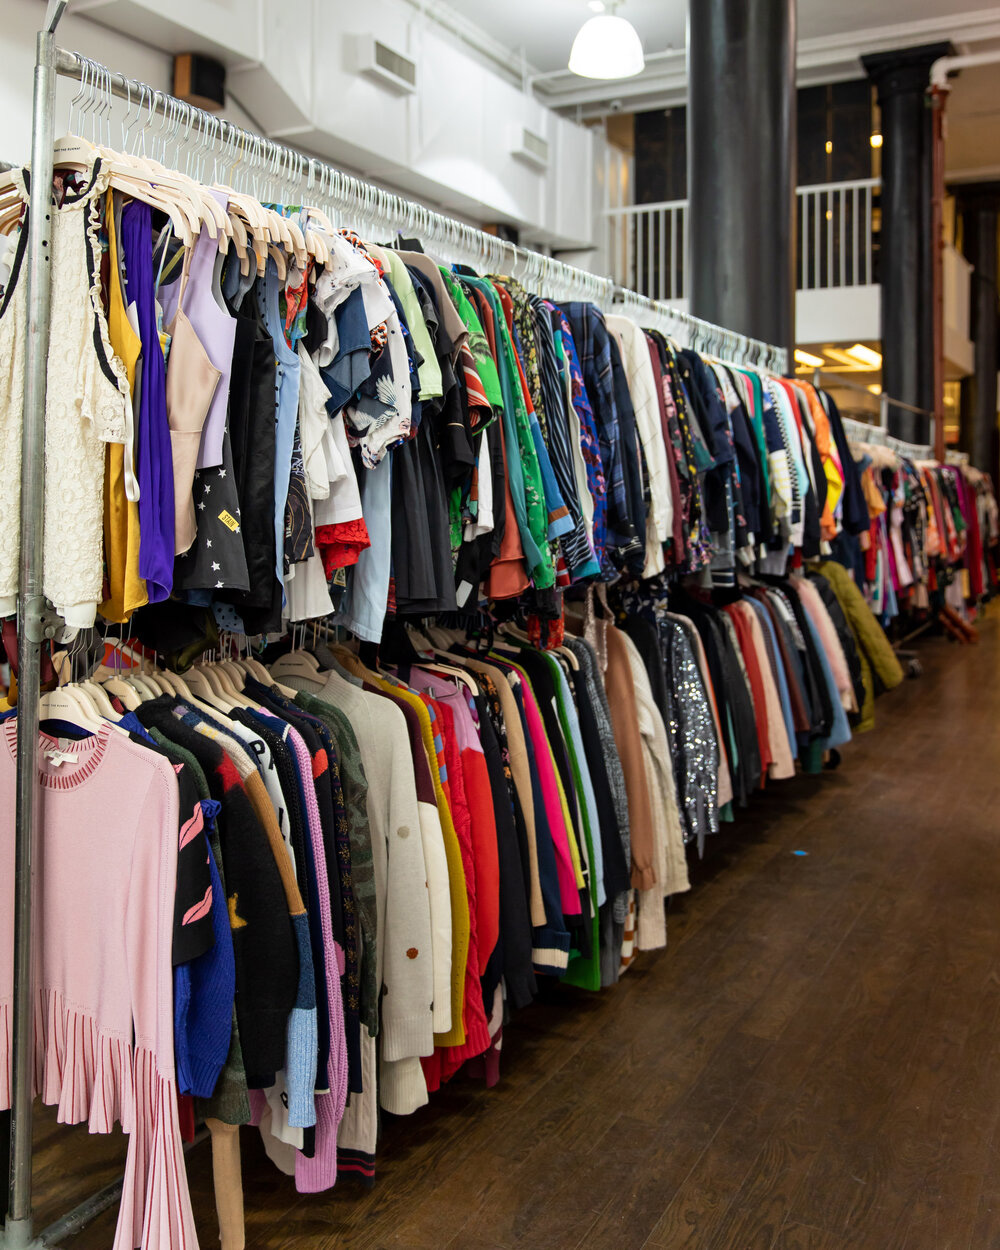 Rent the Runway Sample Sale in Images